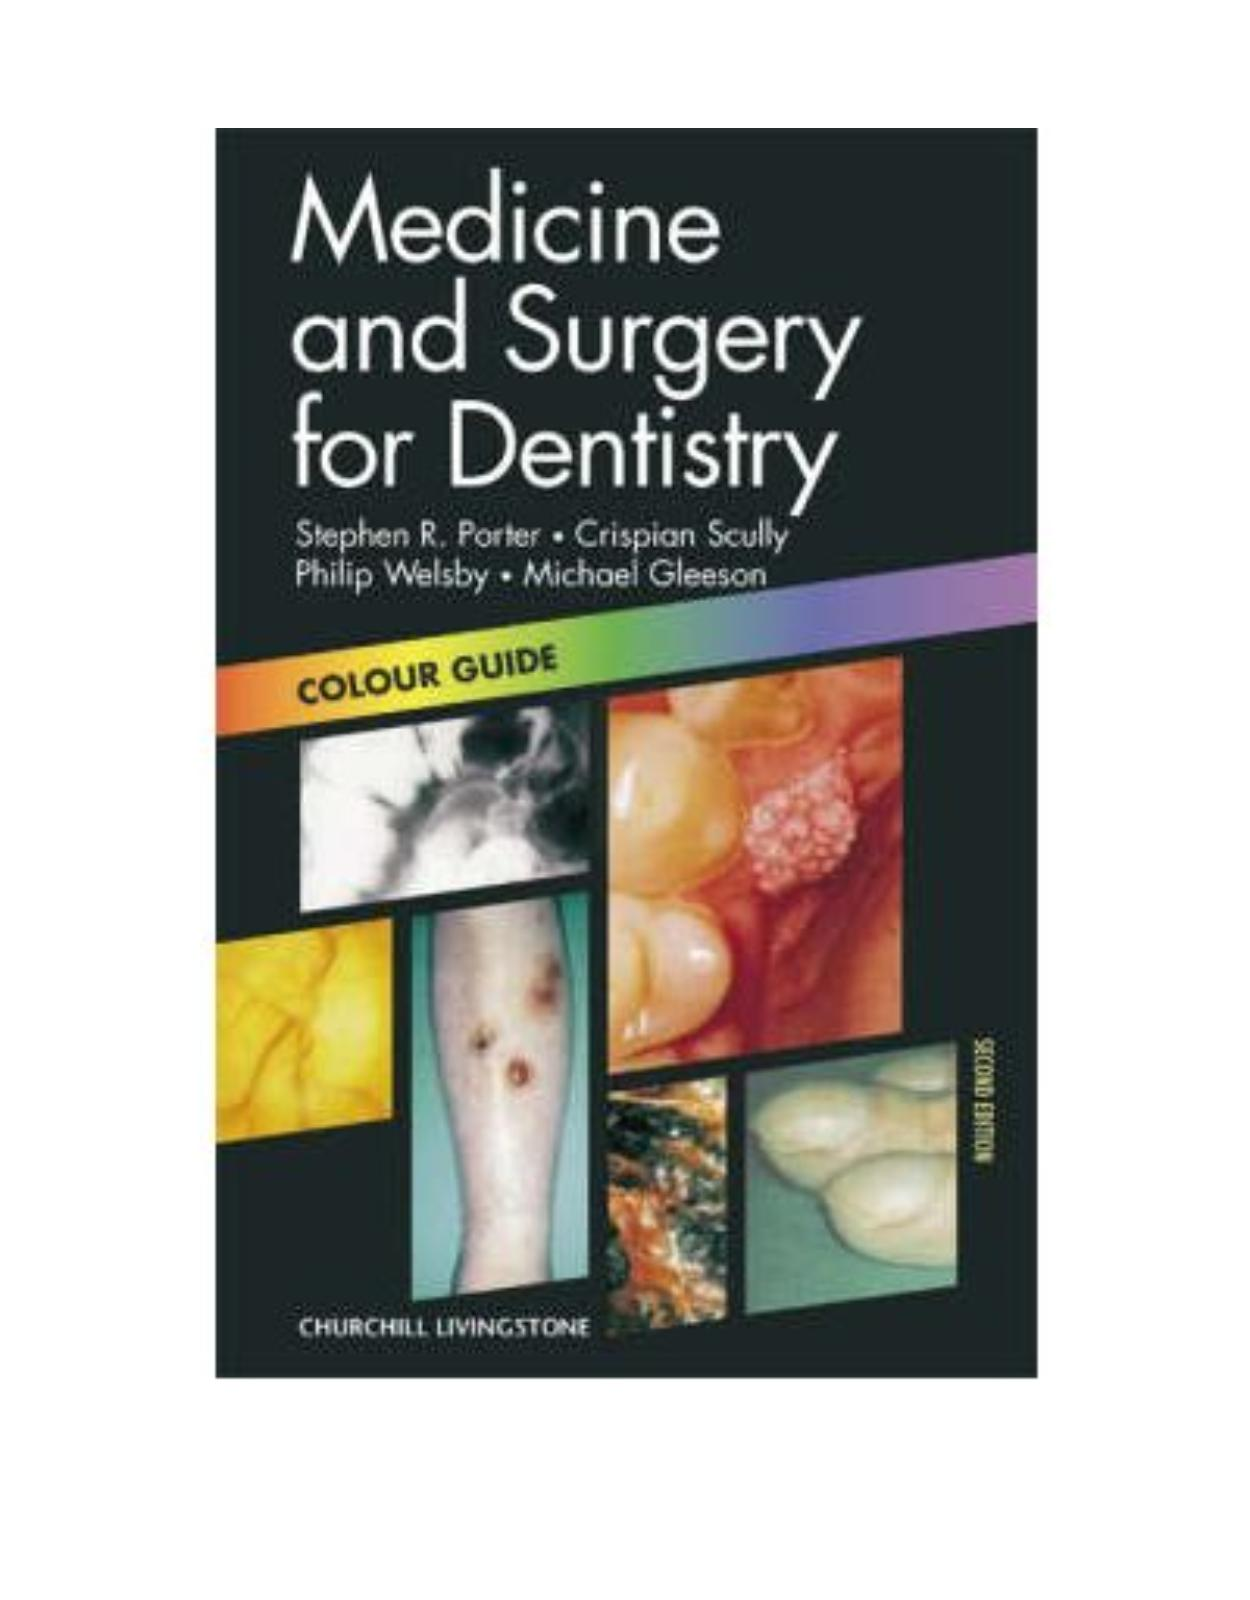 Medicine and Surgery for Dentistry